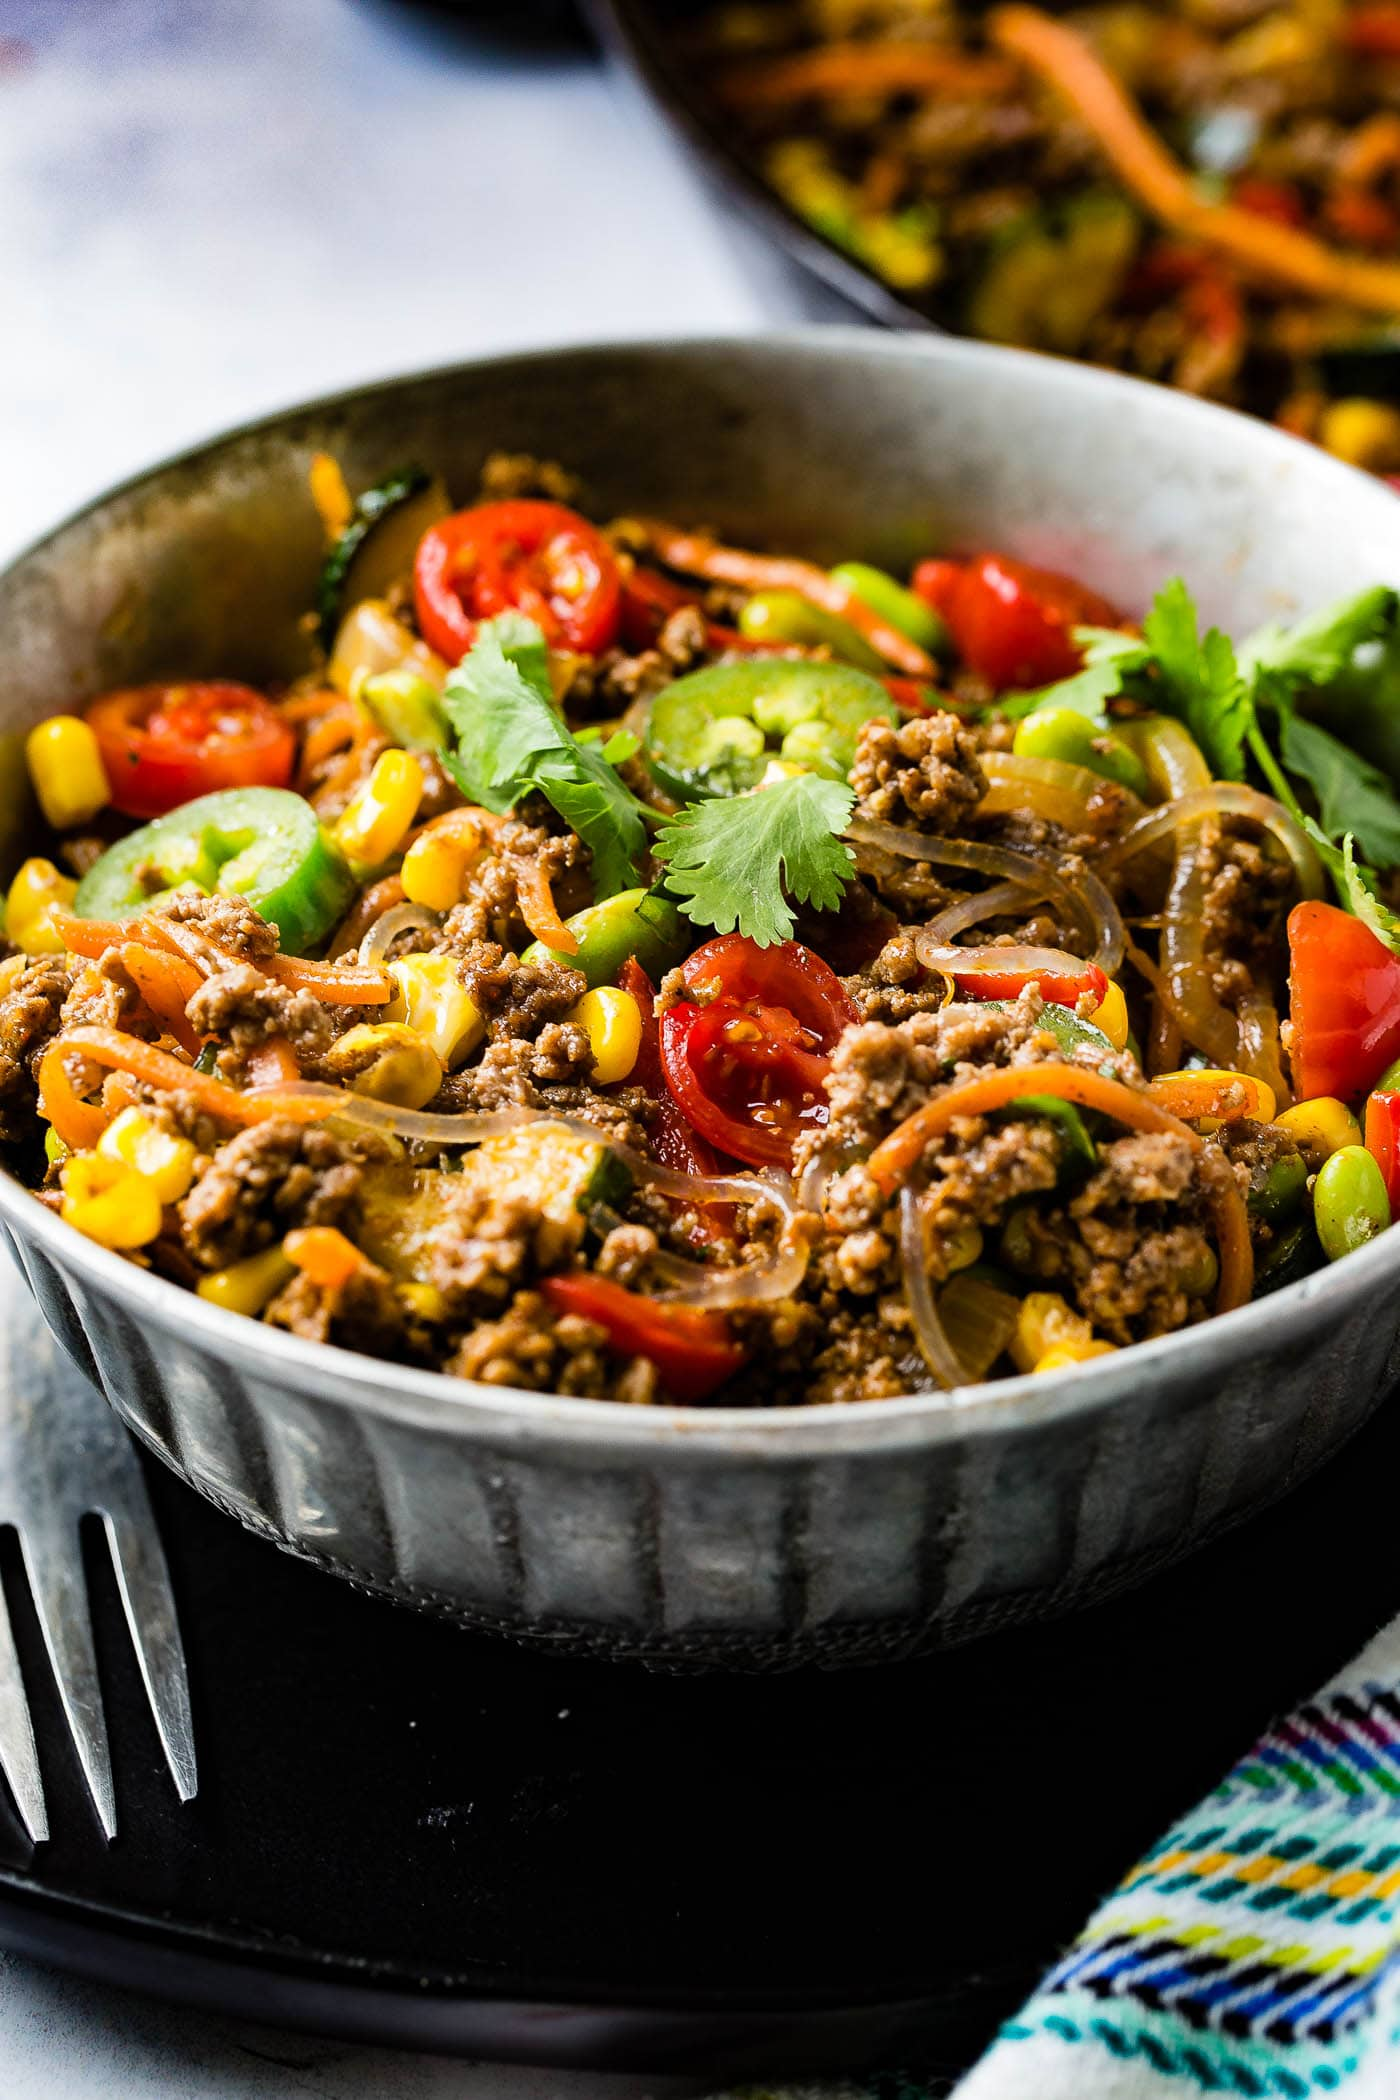 A bowl of taco pasta skillet. There are sliced tomatoes, sliced jalapenos, ground beef, zucchini, carrots, and fresh parsley.